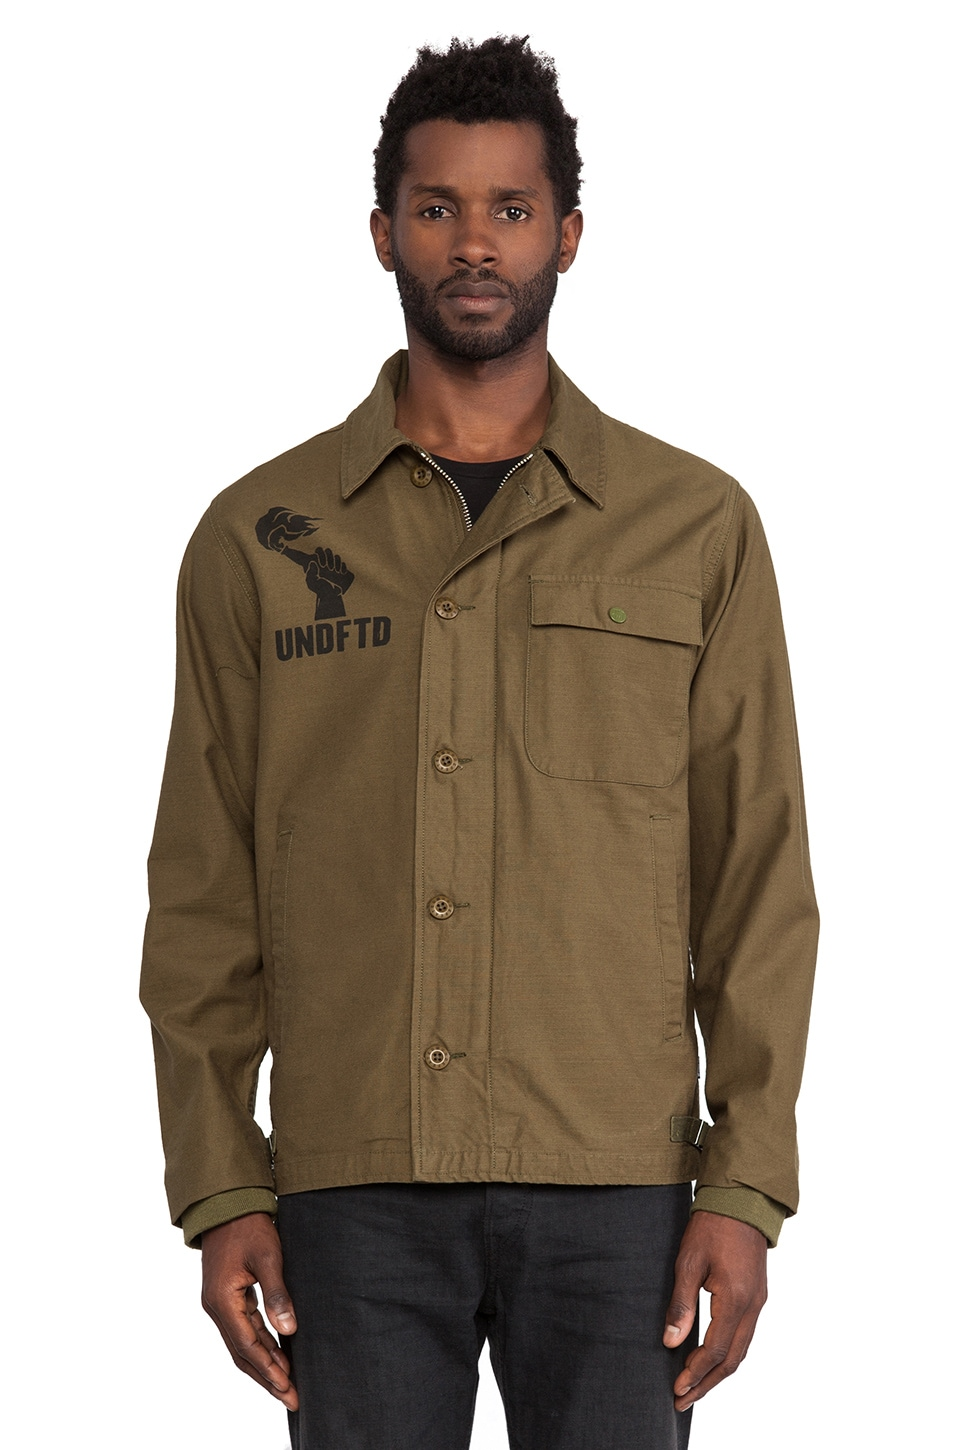 Undefeated Respect Deck Jacket in Olive